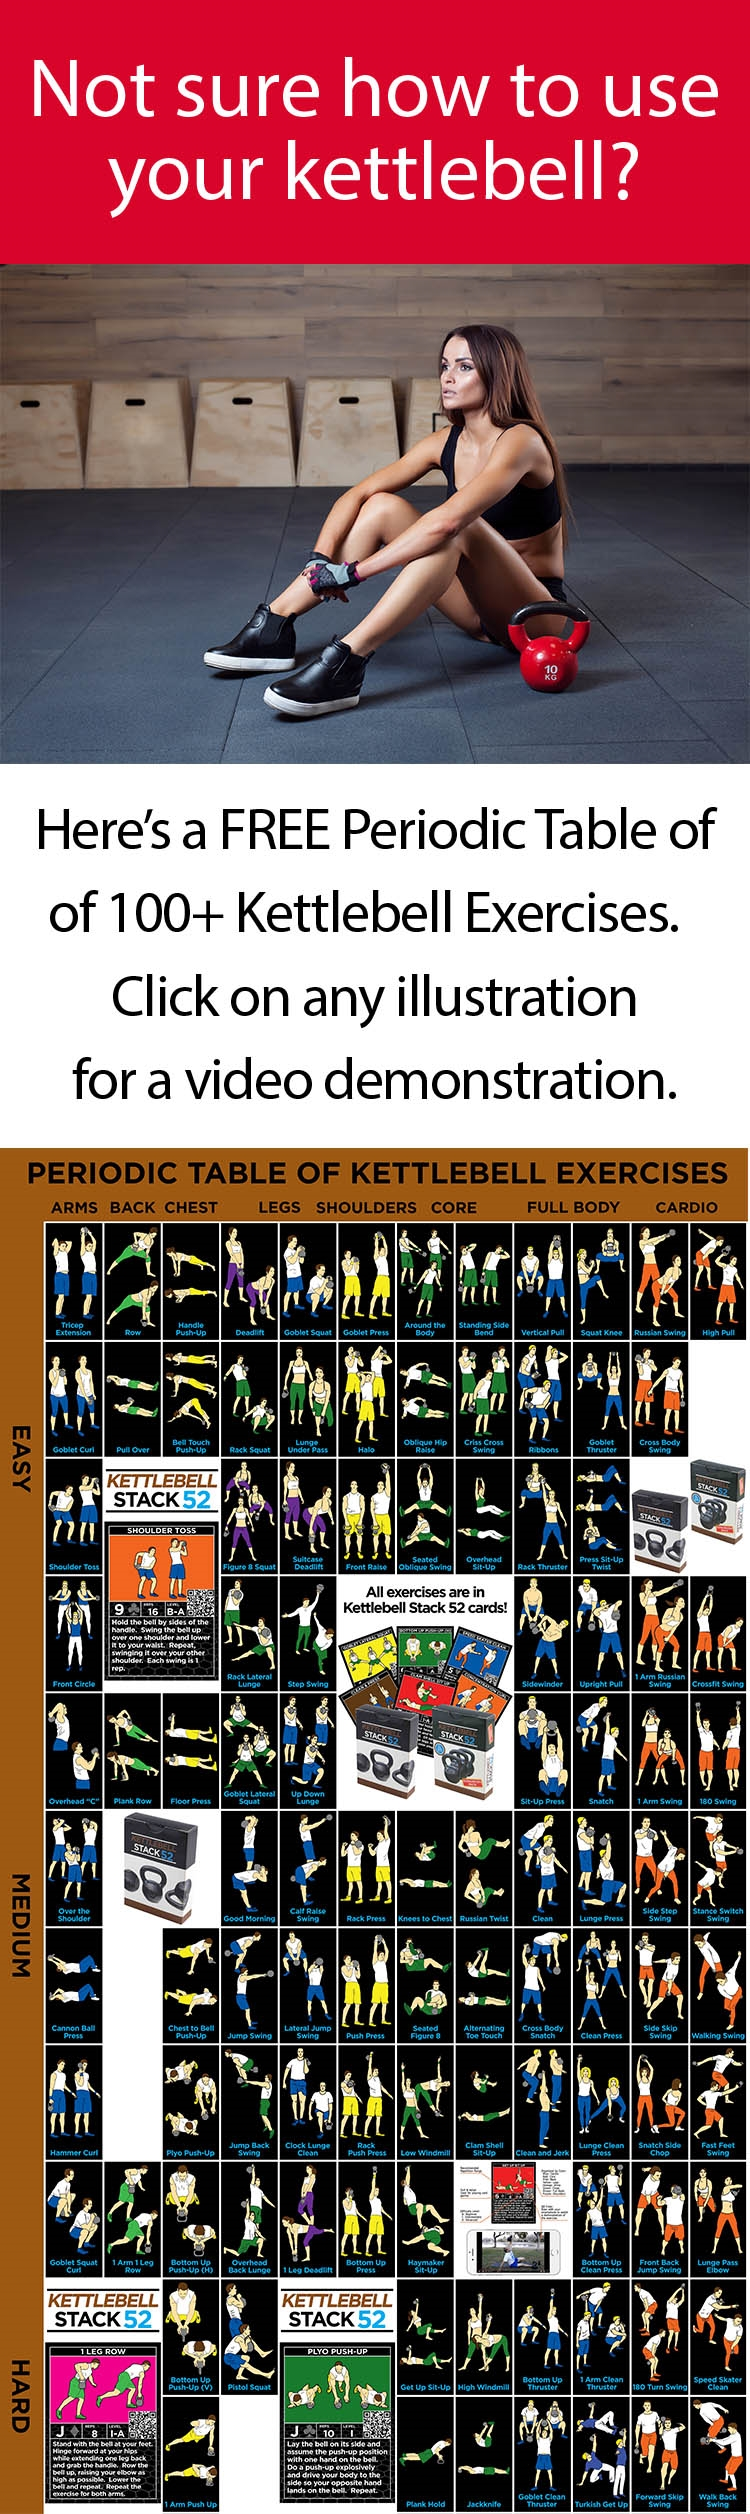 This free periodic table of kettlebell exercises has over 100 this free periodic table of kettlebell exercises has over 100 kettlebell exercises arranged by muscle group urtaz Images